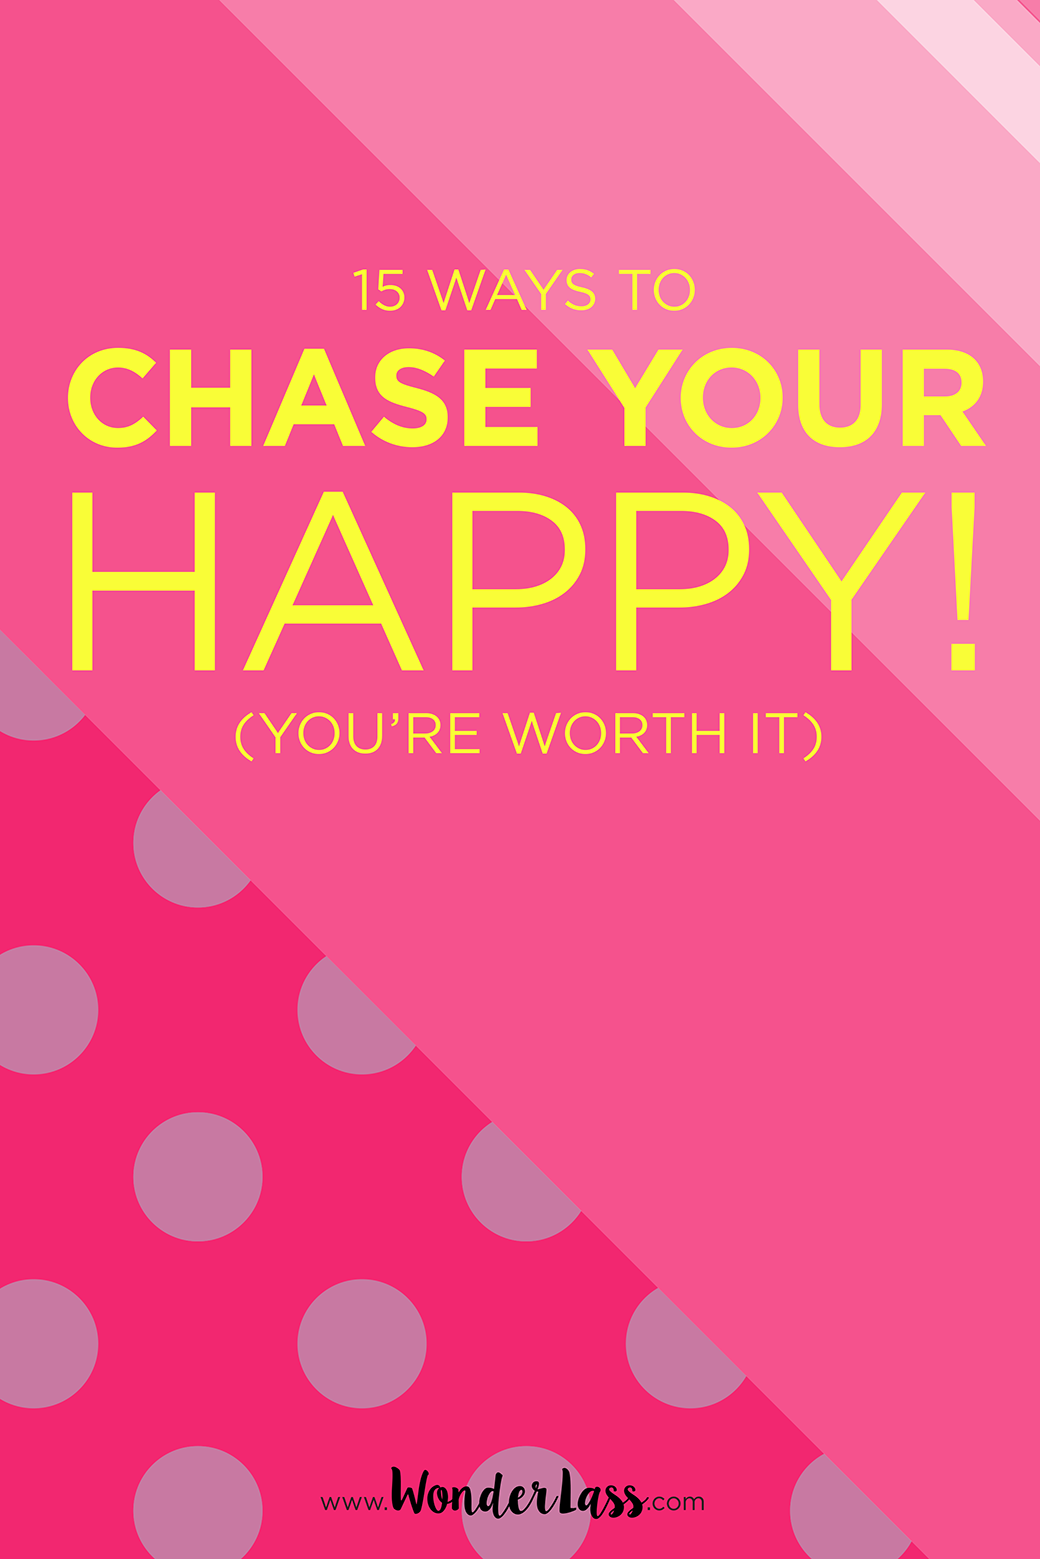 Check out these 15 creative ways to chase your own happiness! (Because you're totally worth it!)